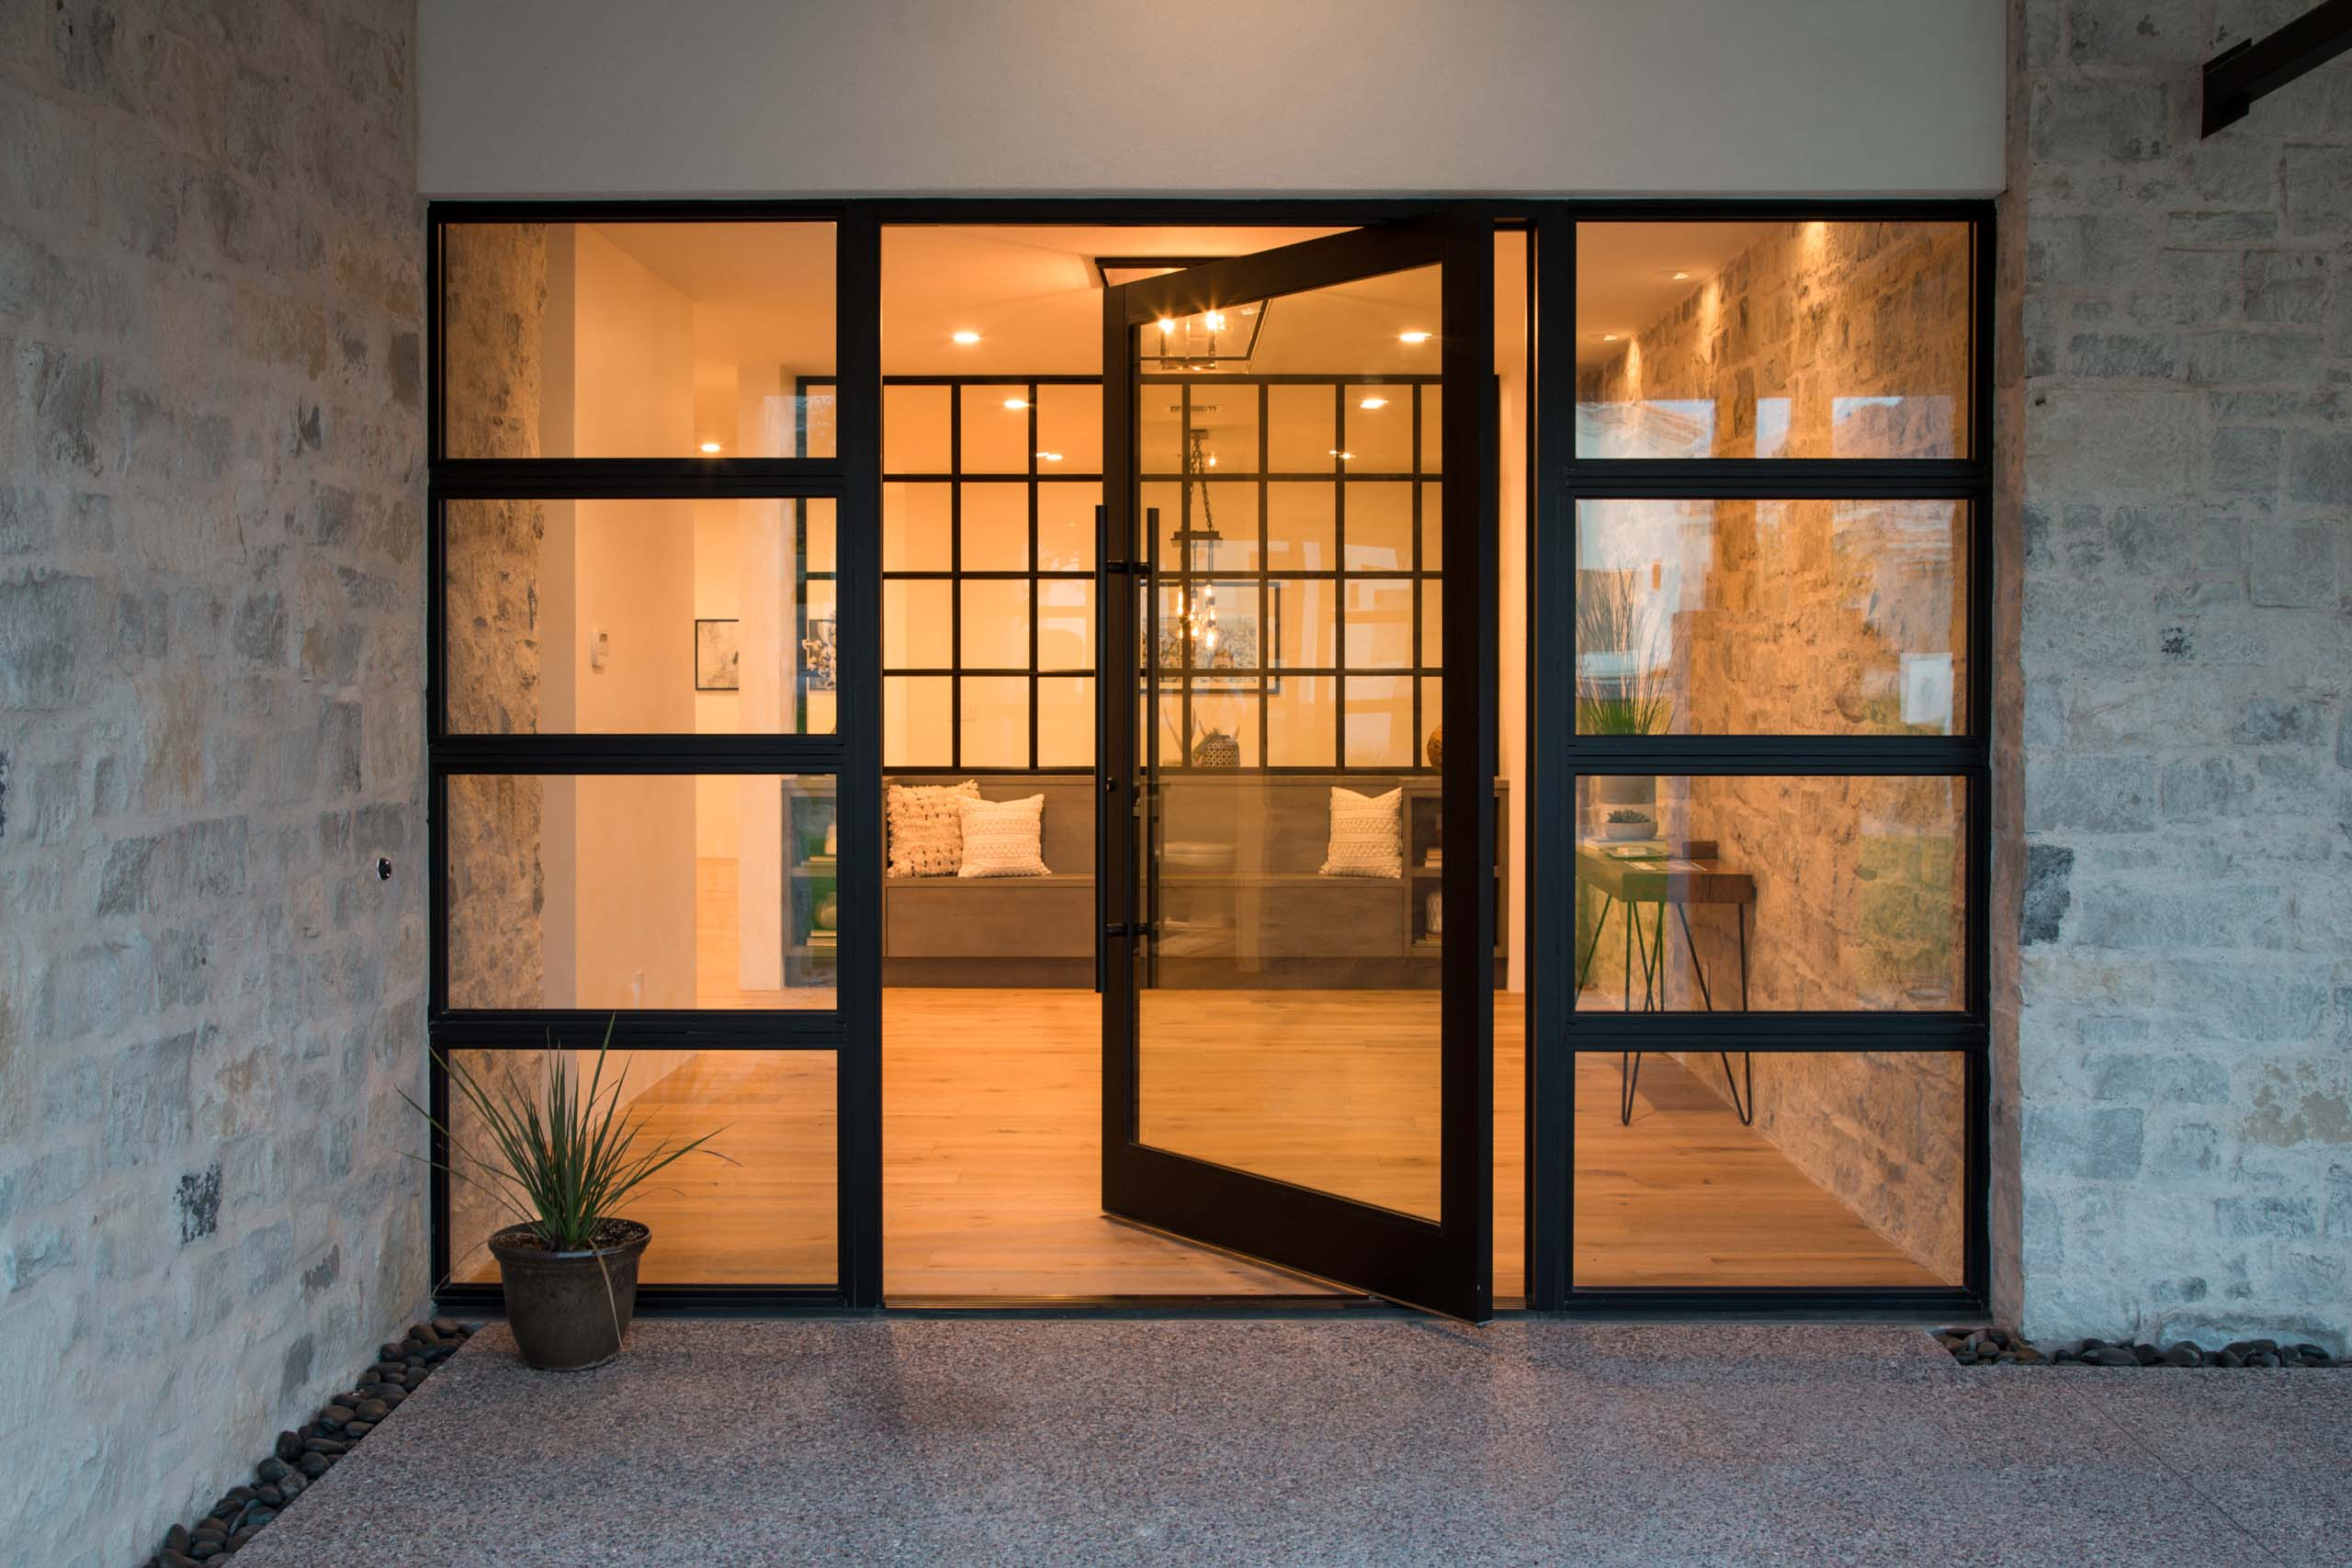 A massive pivot door greets visitors to the dramatic front entry.